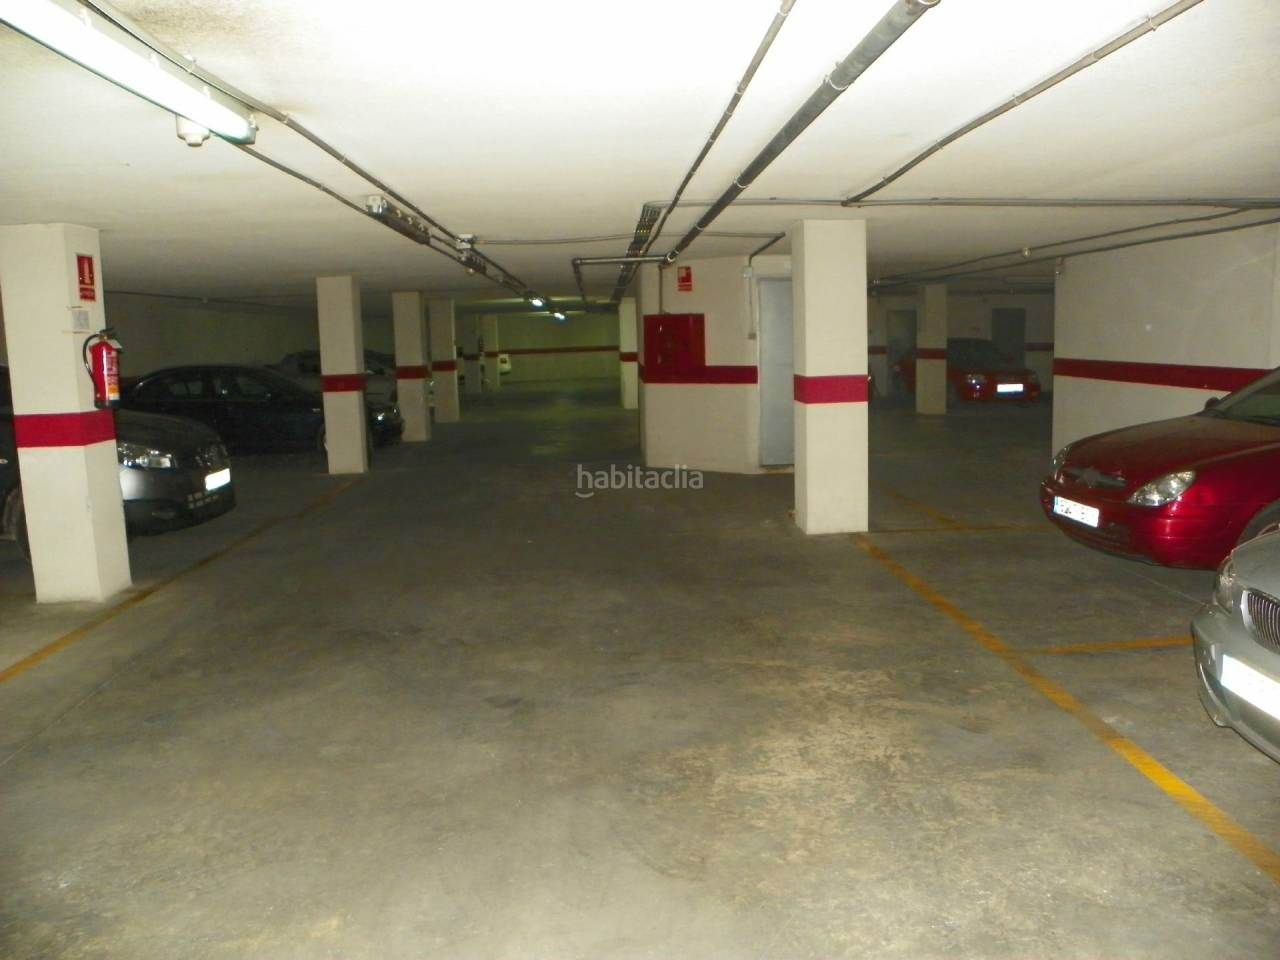 Posto auto in Puerto. Parking en venta